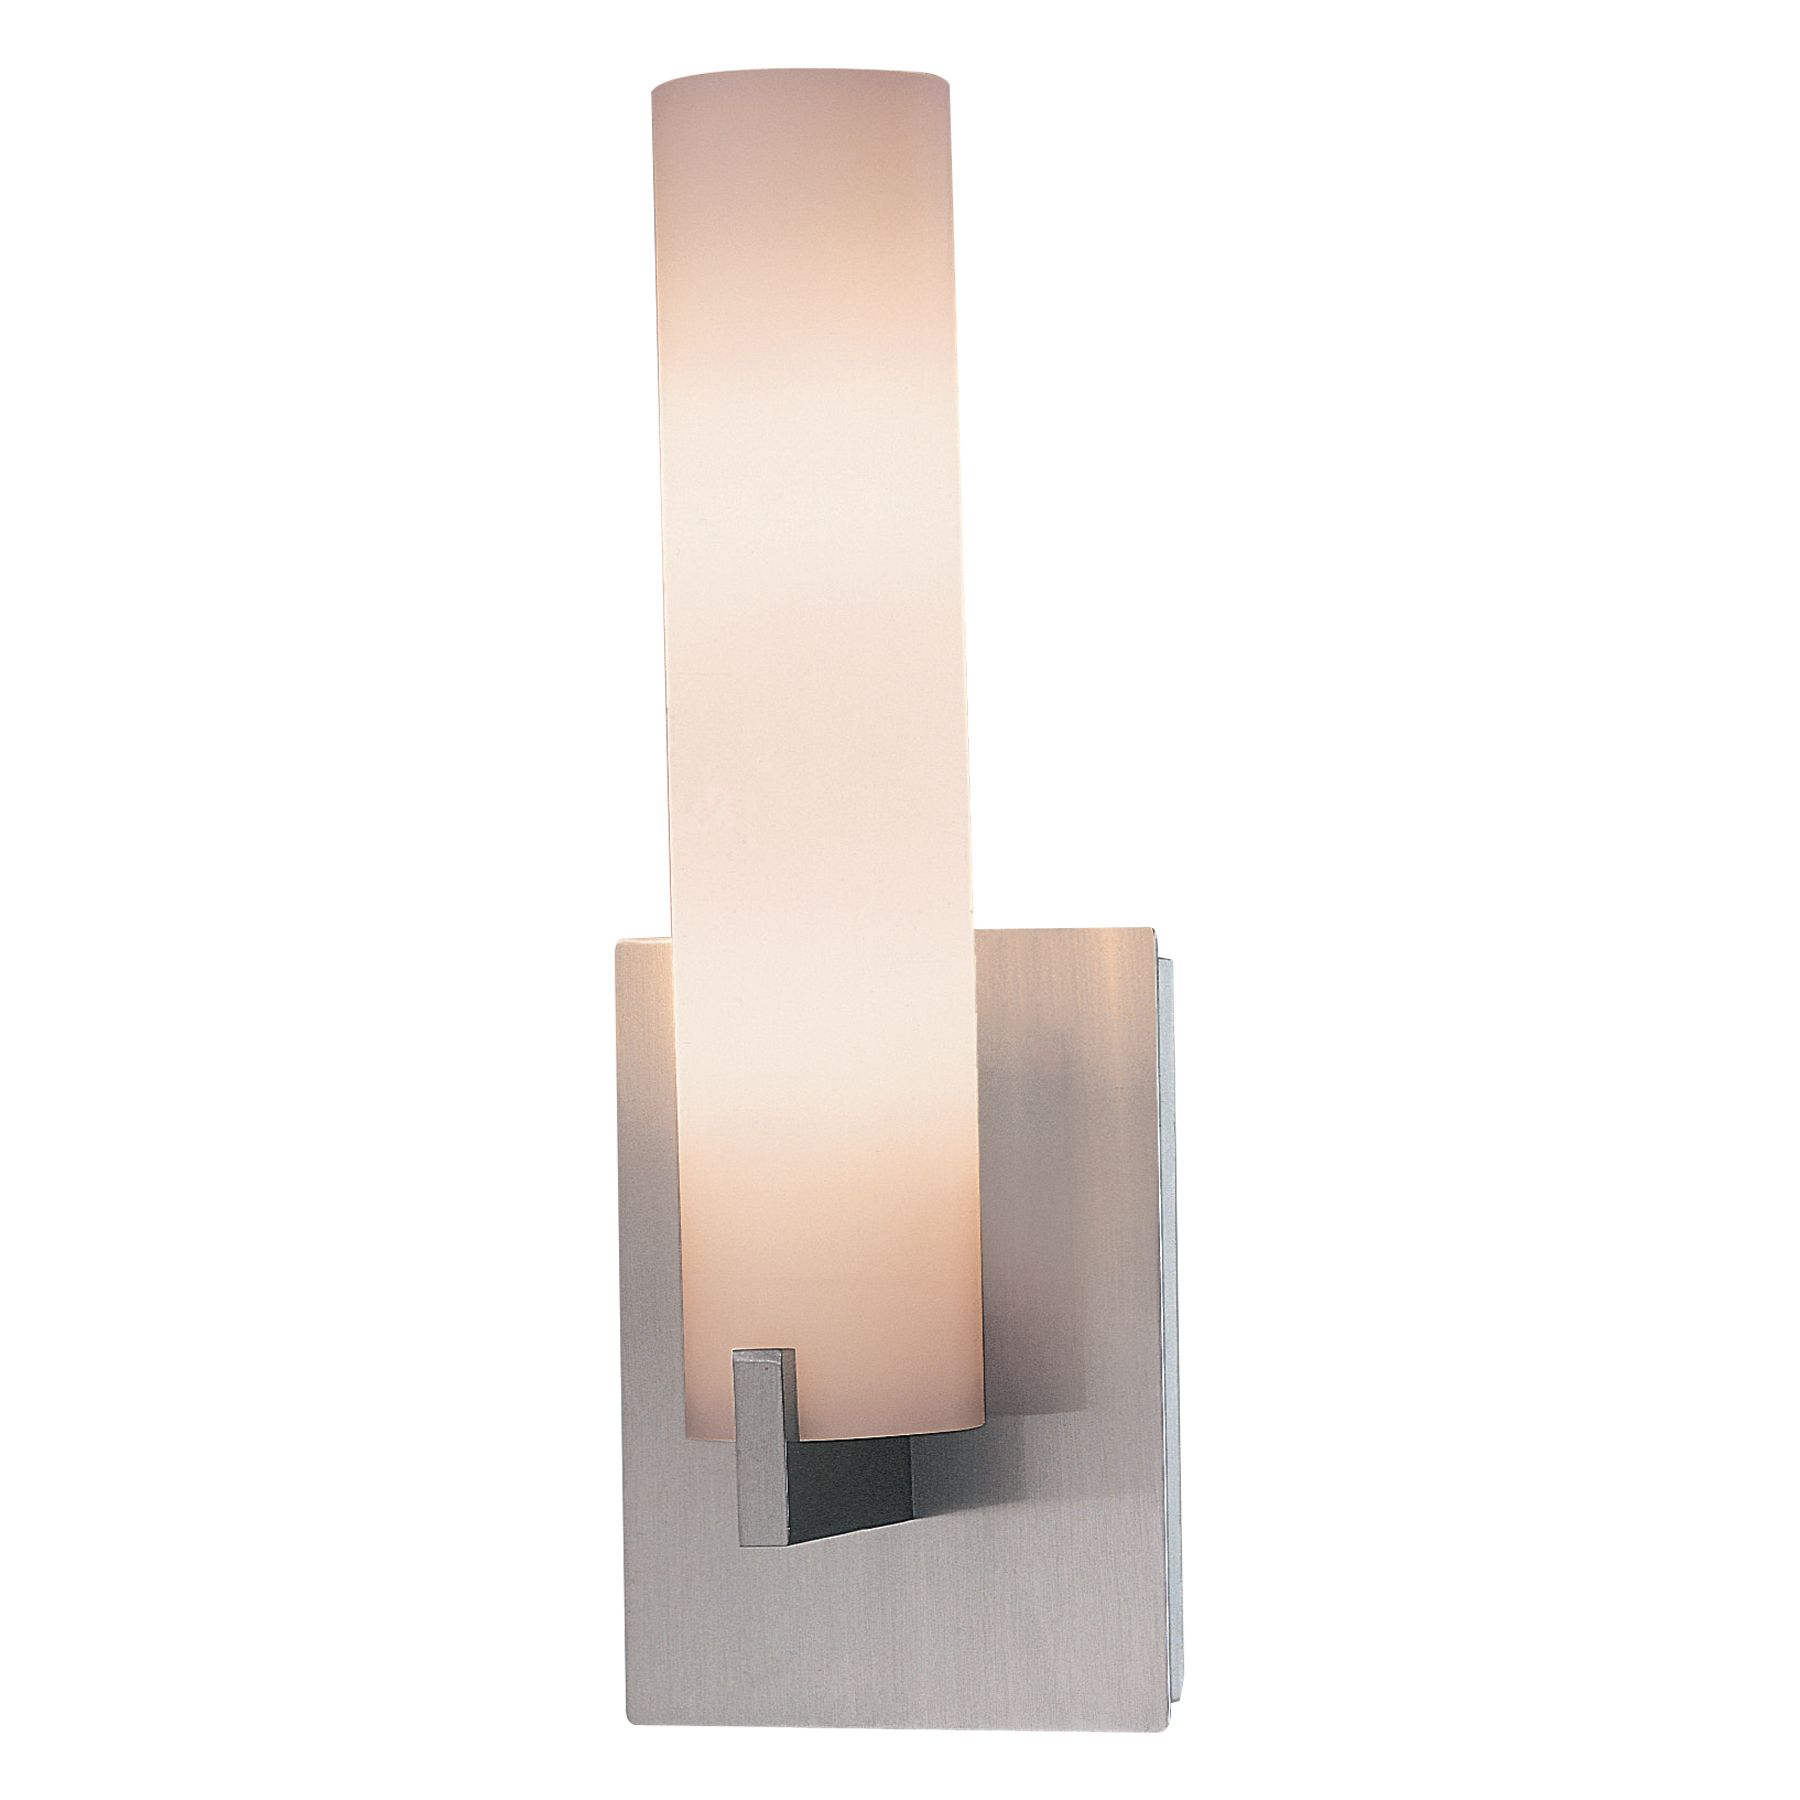 Tube Wall Light | Wall sconces, Vanities and Bath